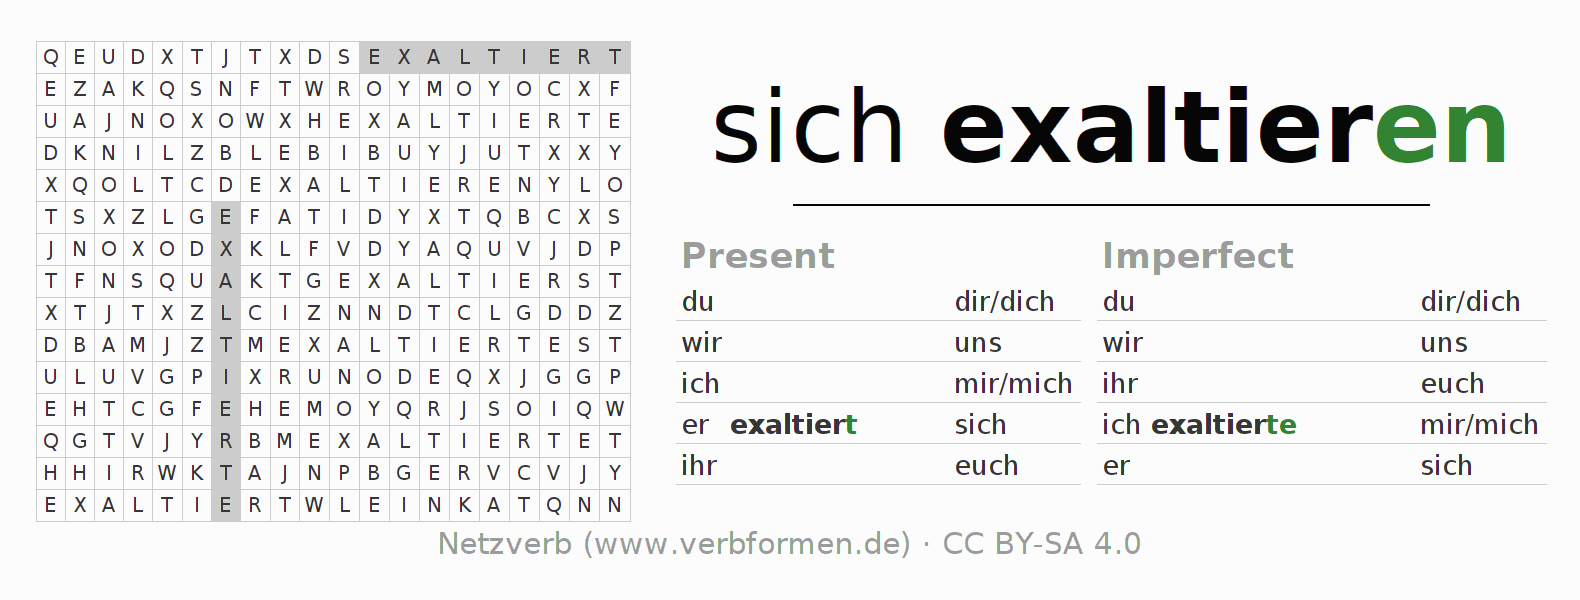 Word search puzzle for the conjugation of the verb sich exaltieren